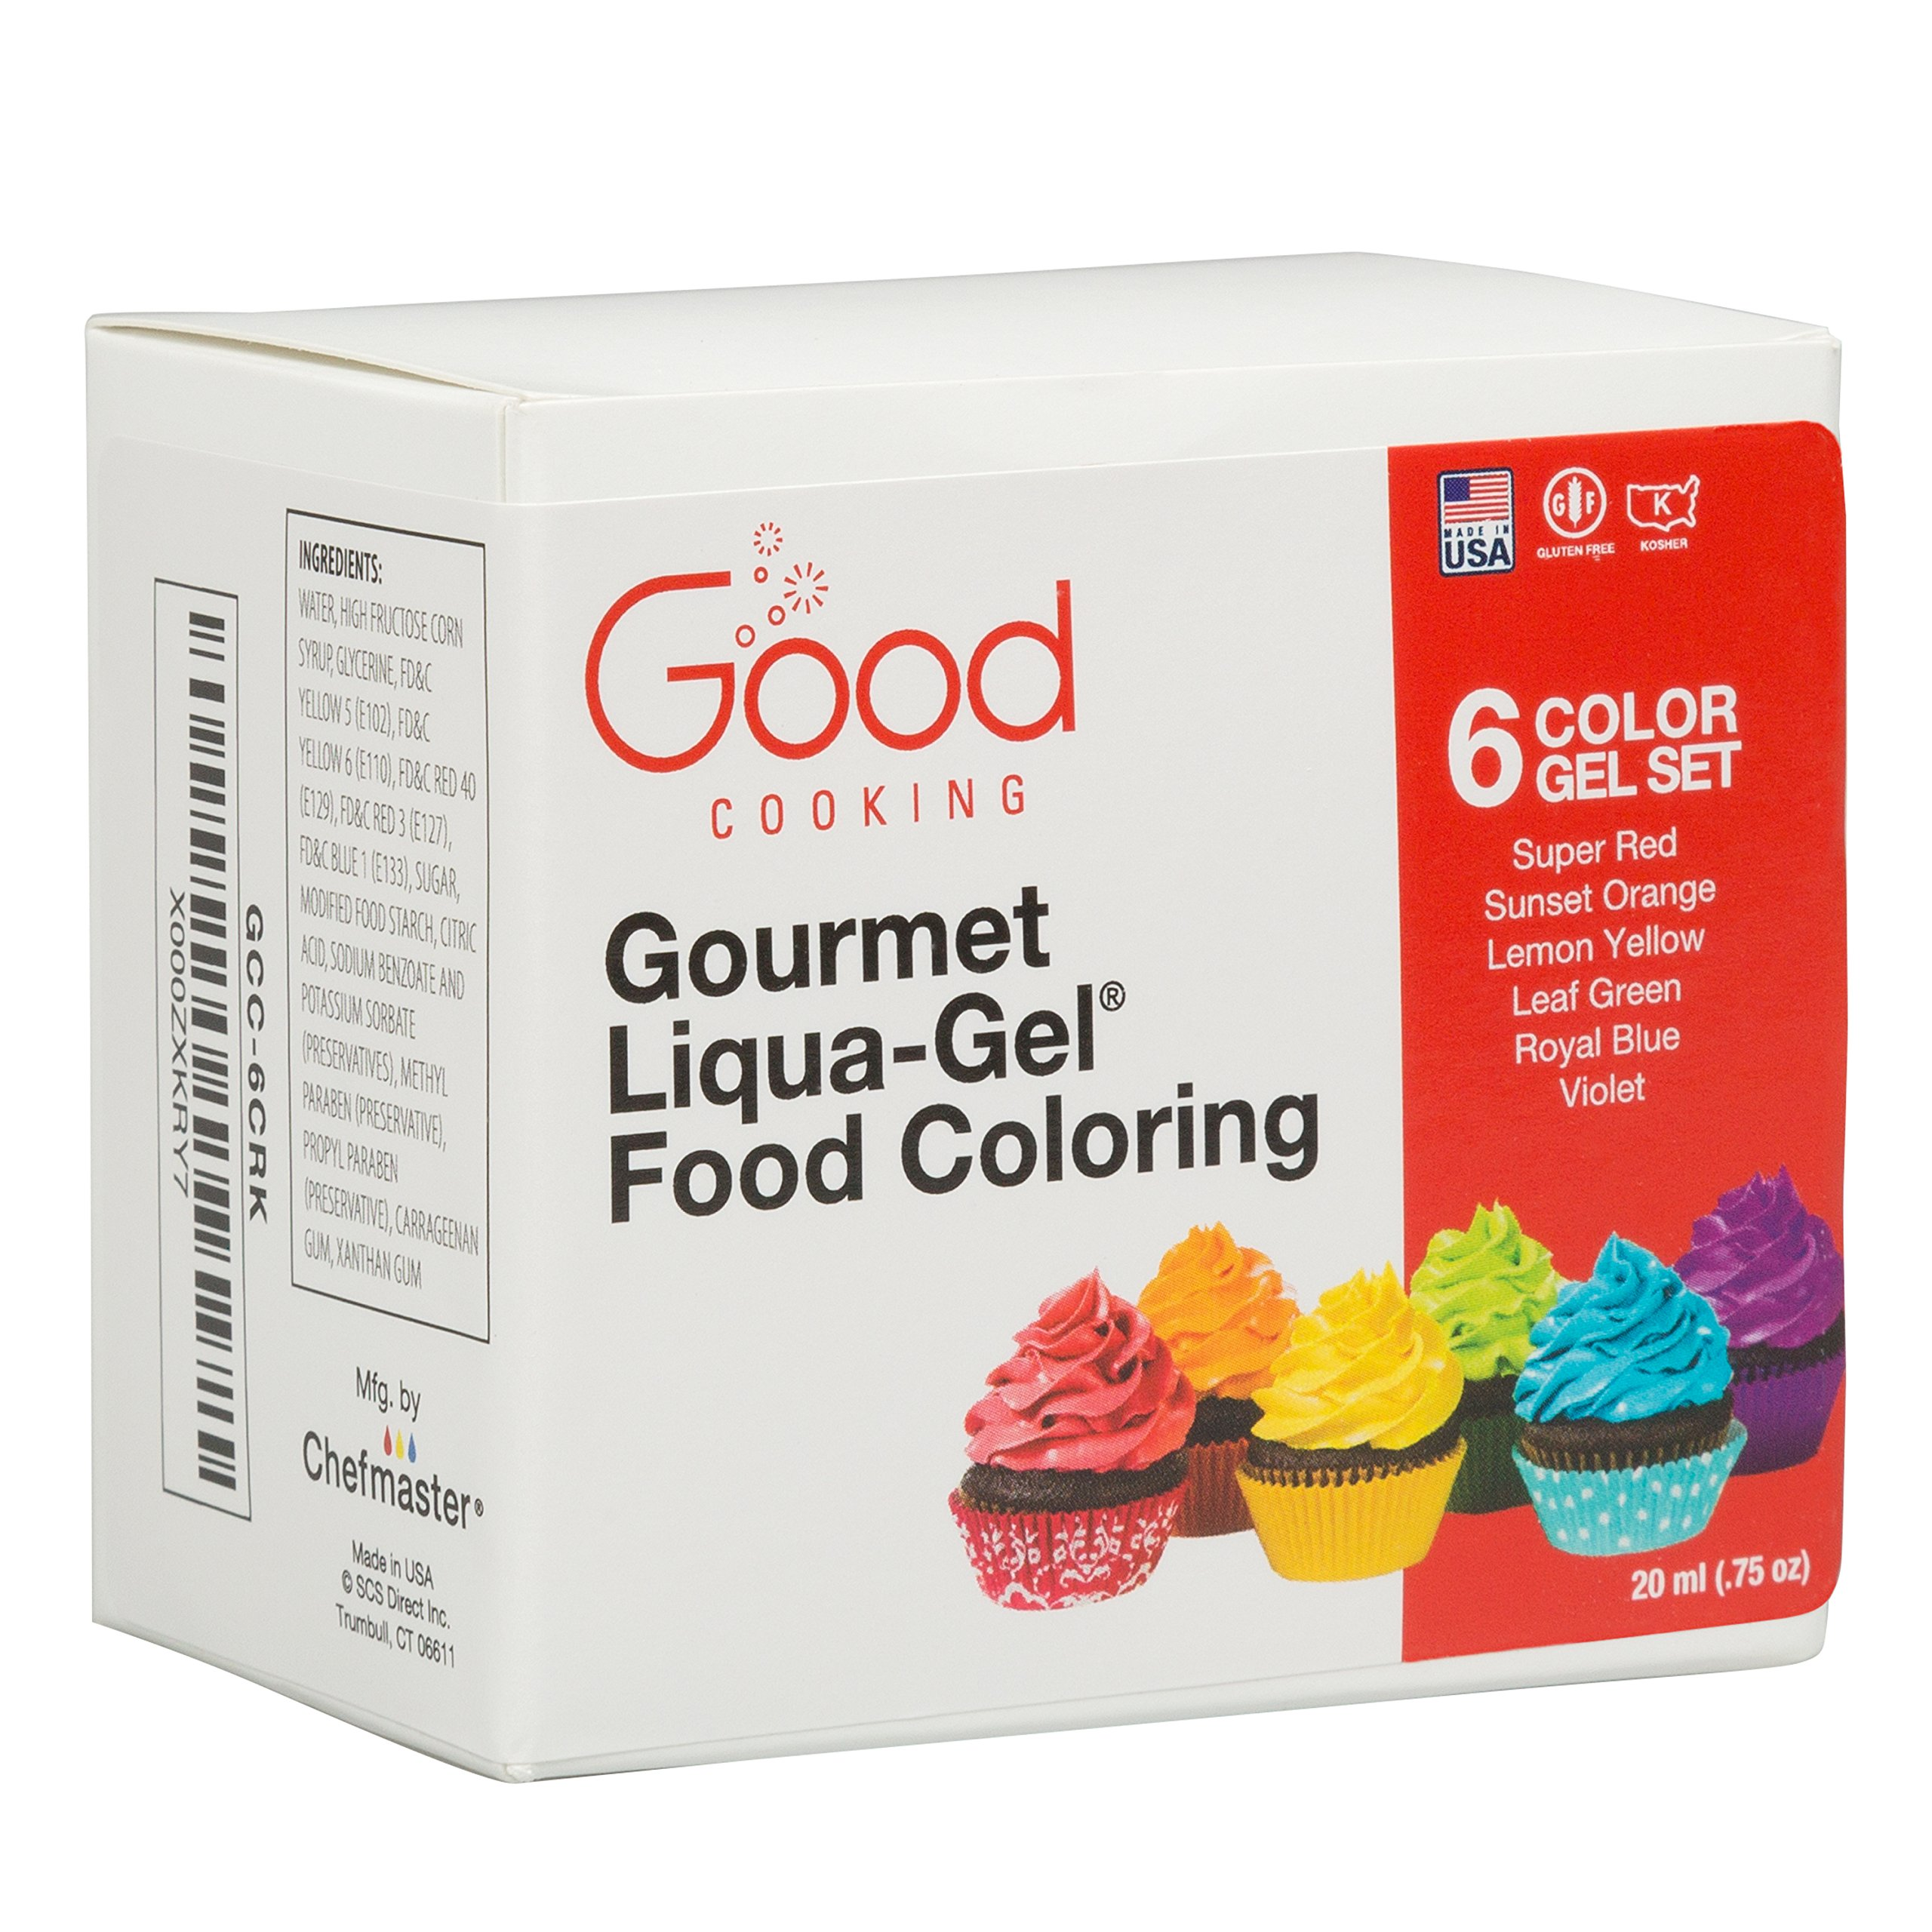 Food Coloring Liqua-Gel - 6 Color Rainbow Kit in .75 fl. oz. (20ml) Bottles by Good Cooking (Image #3)